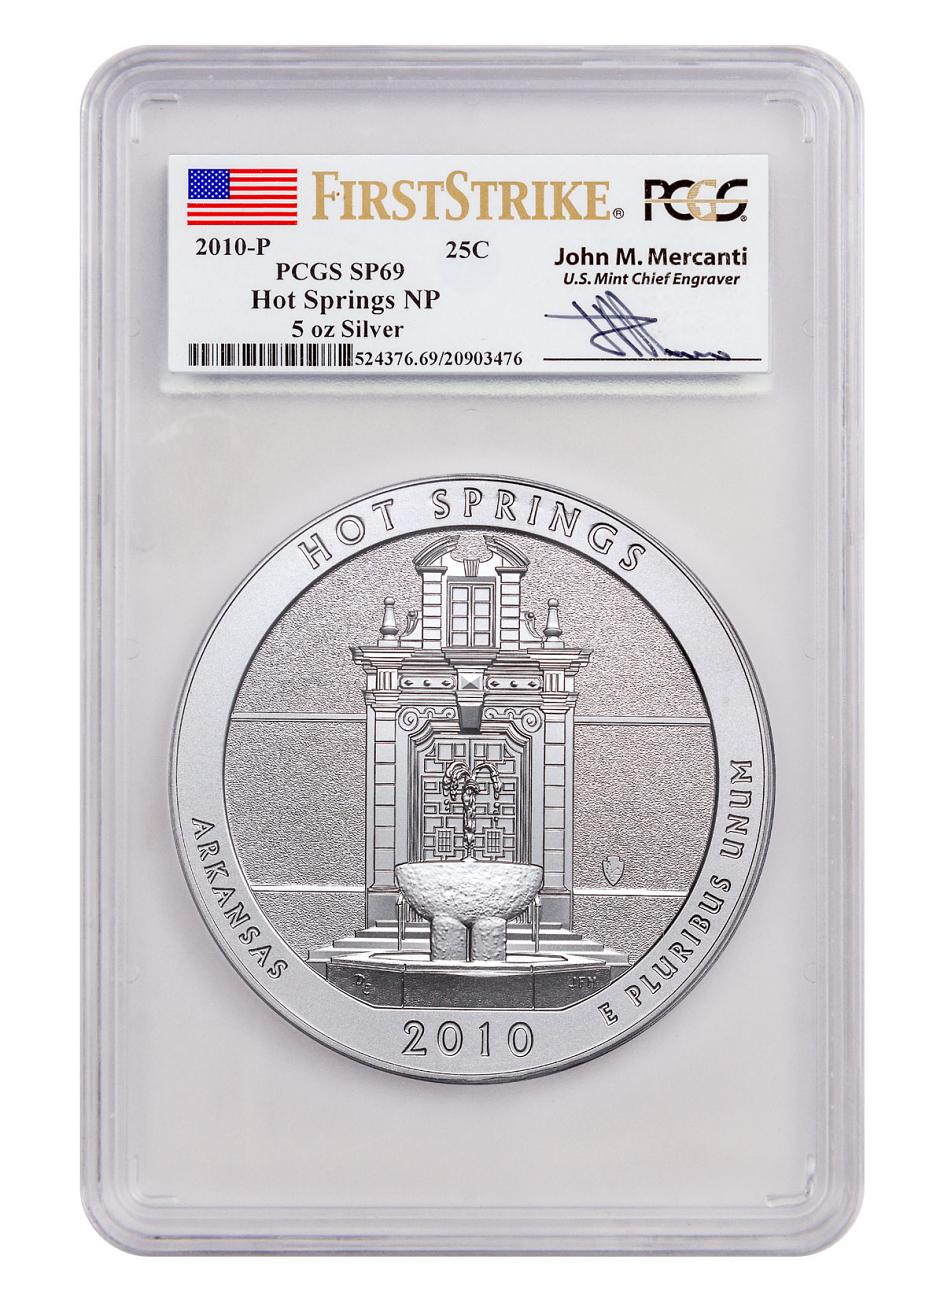 2010-P Hot Springs 5 oz. Silver America the Beautiful Specimen Coin PCGS SP69 FS (Mercanti Signed Label)